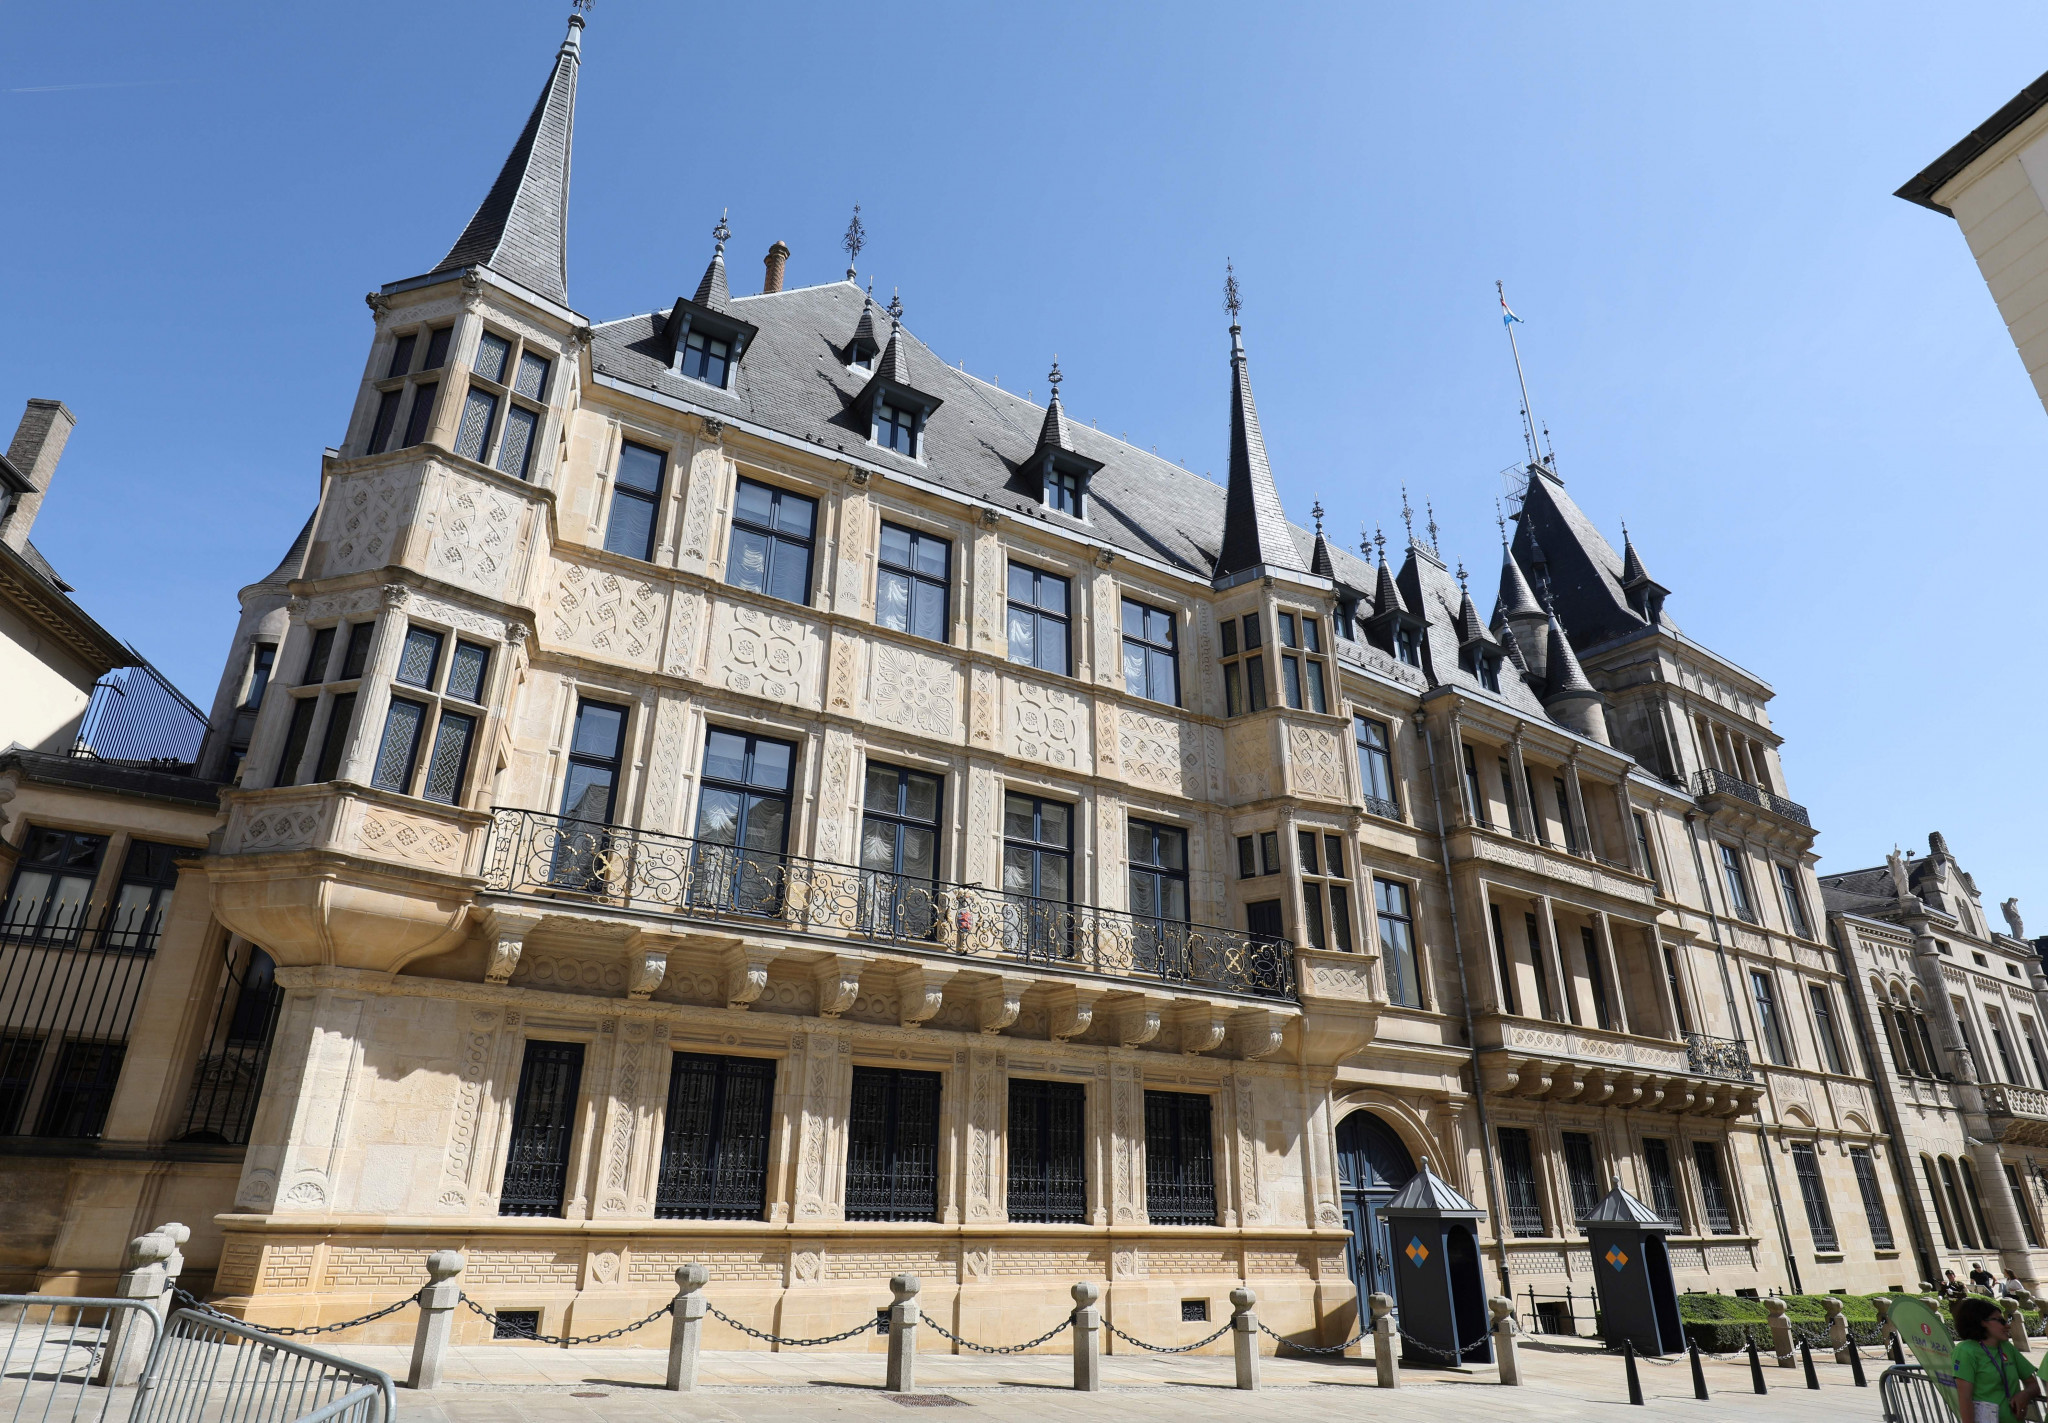 Grand Ducal Palace in Luxembourg. ©Ludovic Marin/AFP via Getty Images